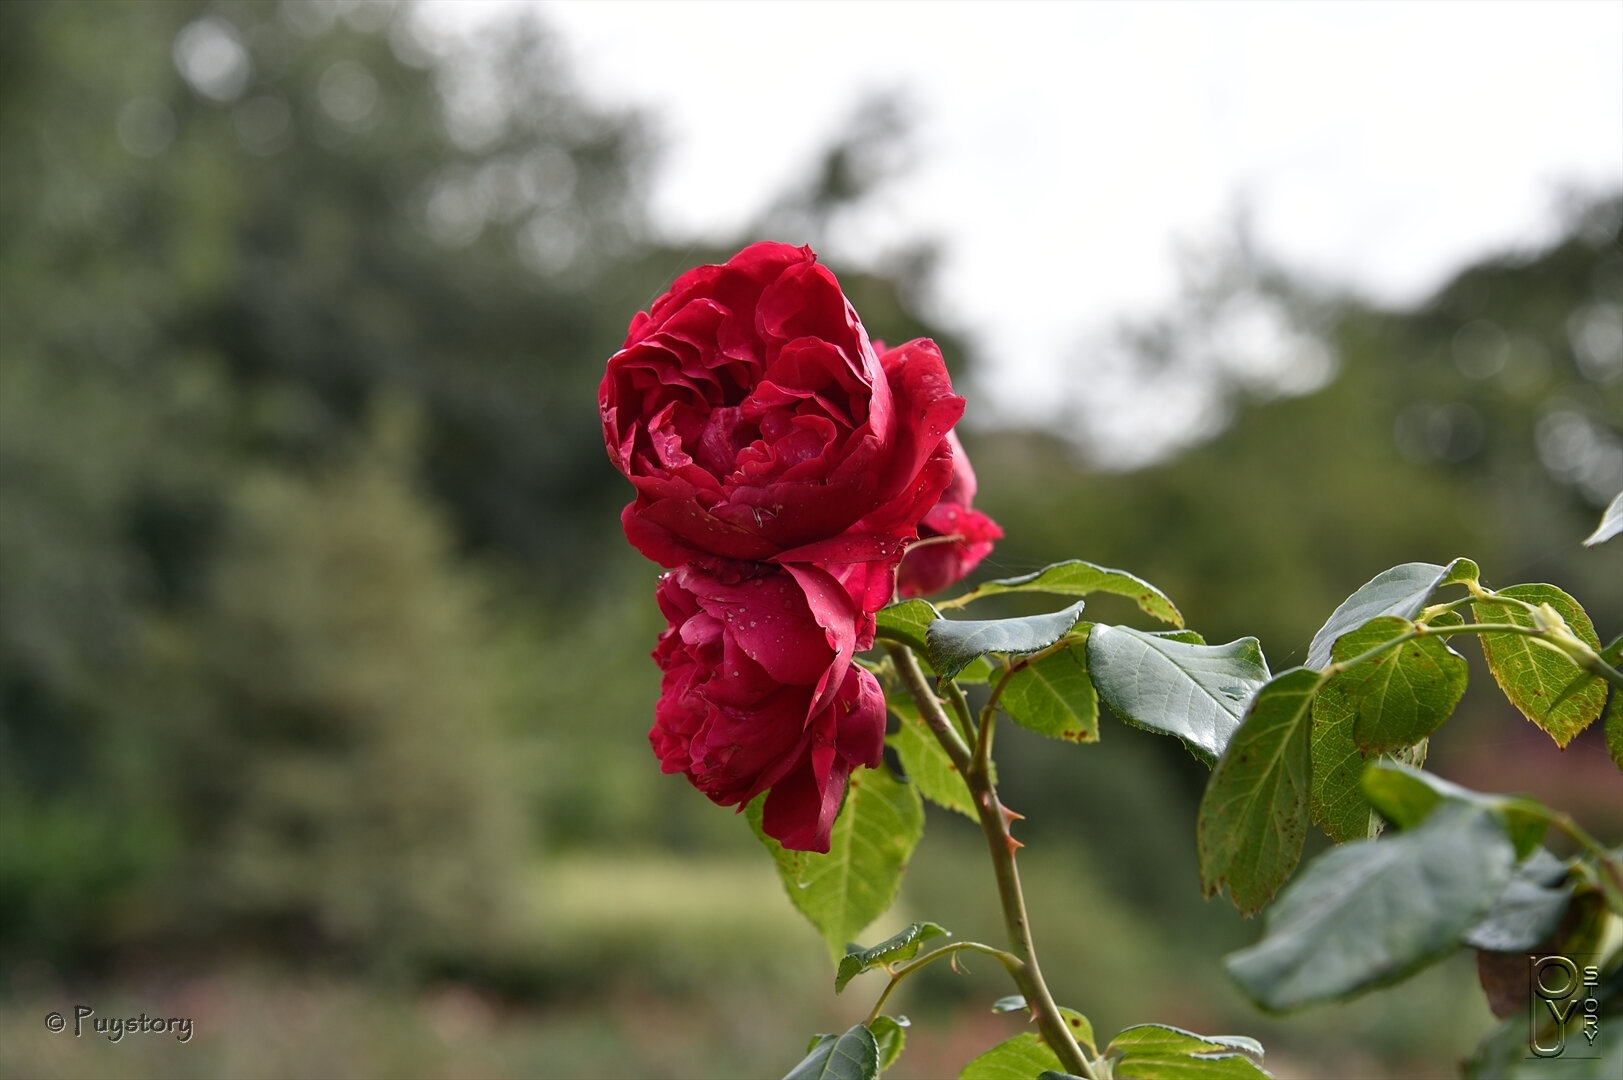 Rose Cupidon rencontres site commentaires